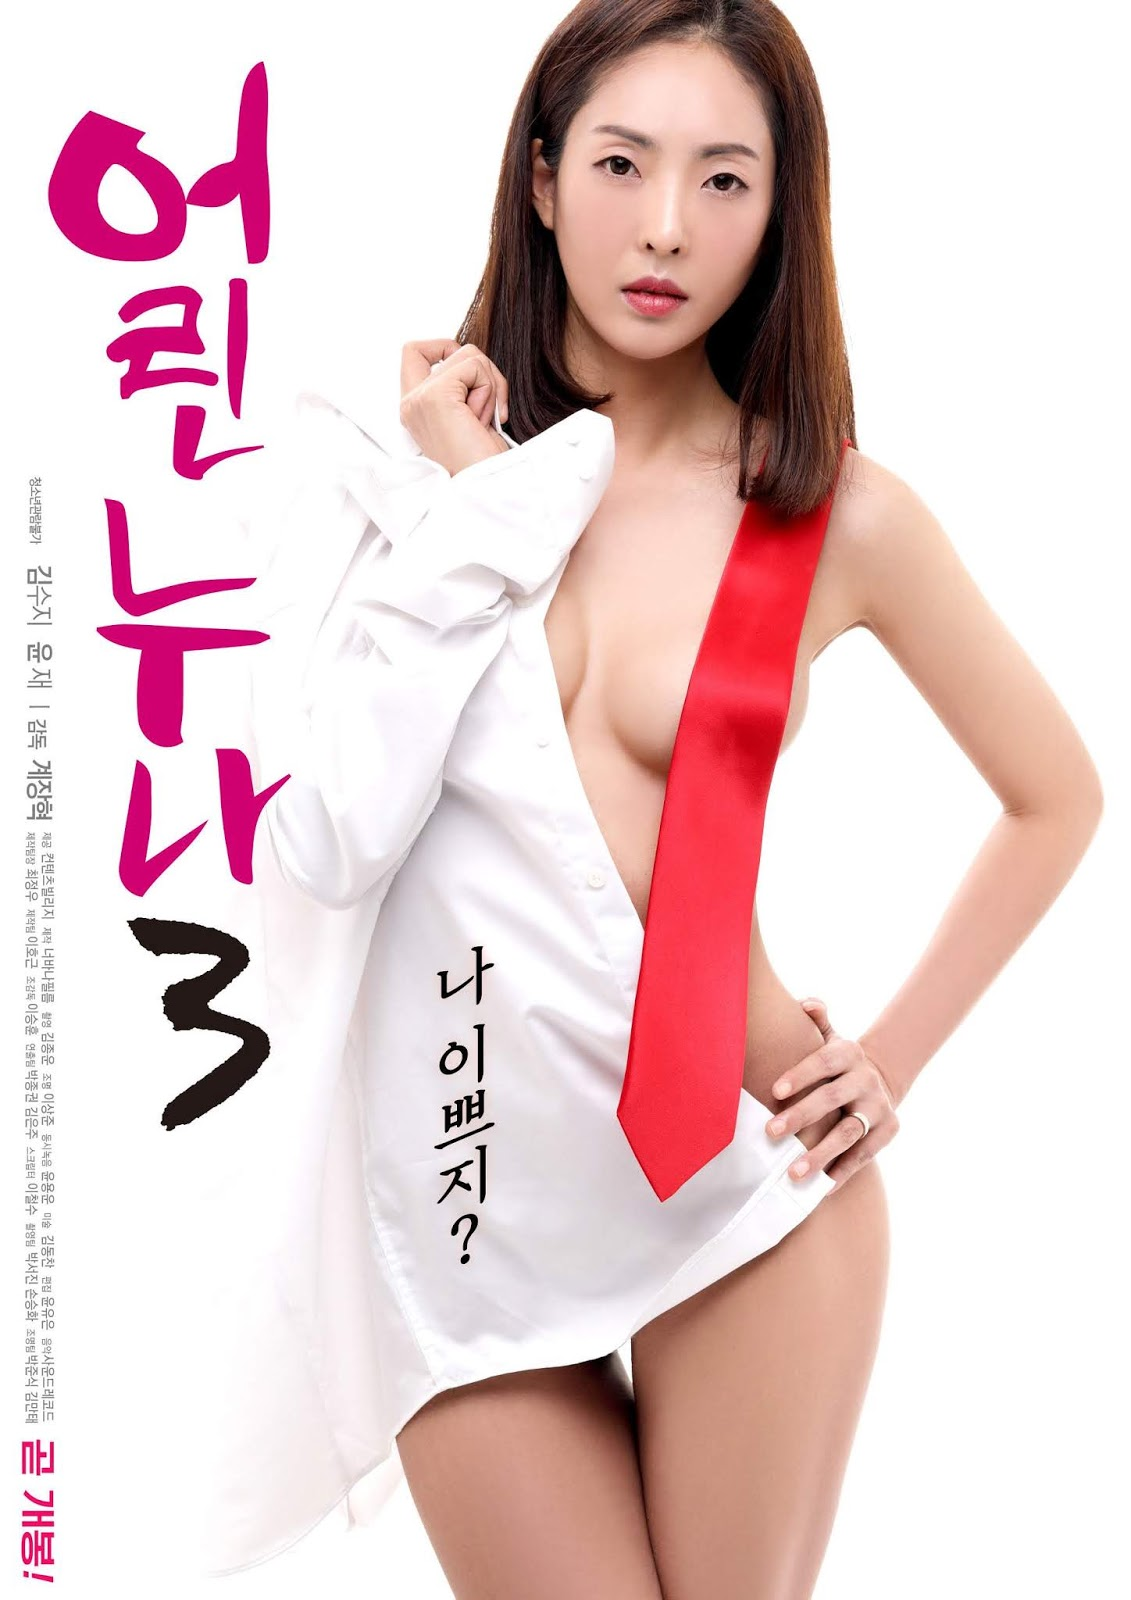 Young Sister 3 Full Korea 18+ Adult Movie Online Free